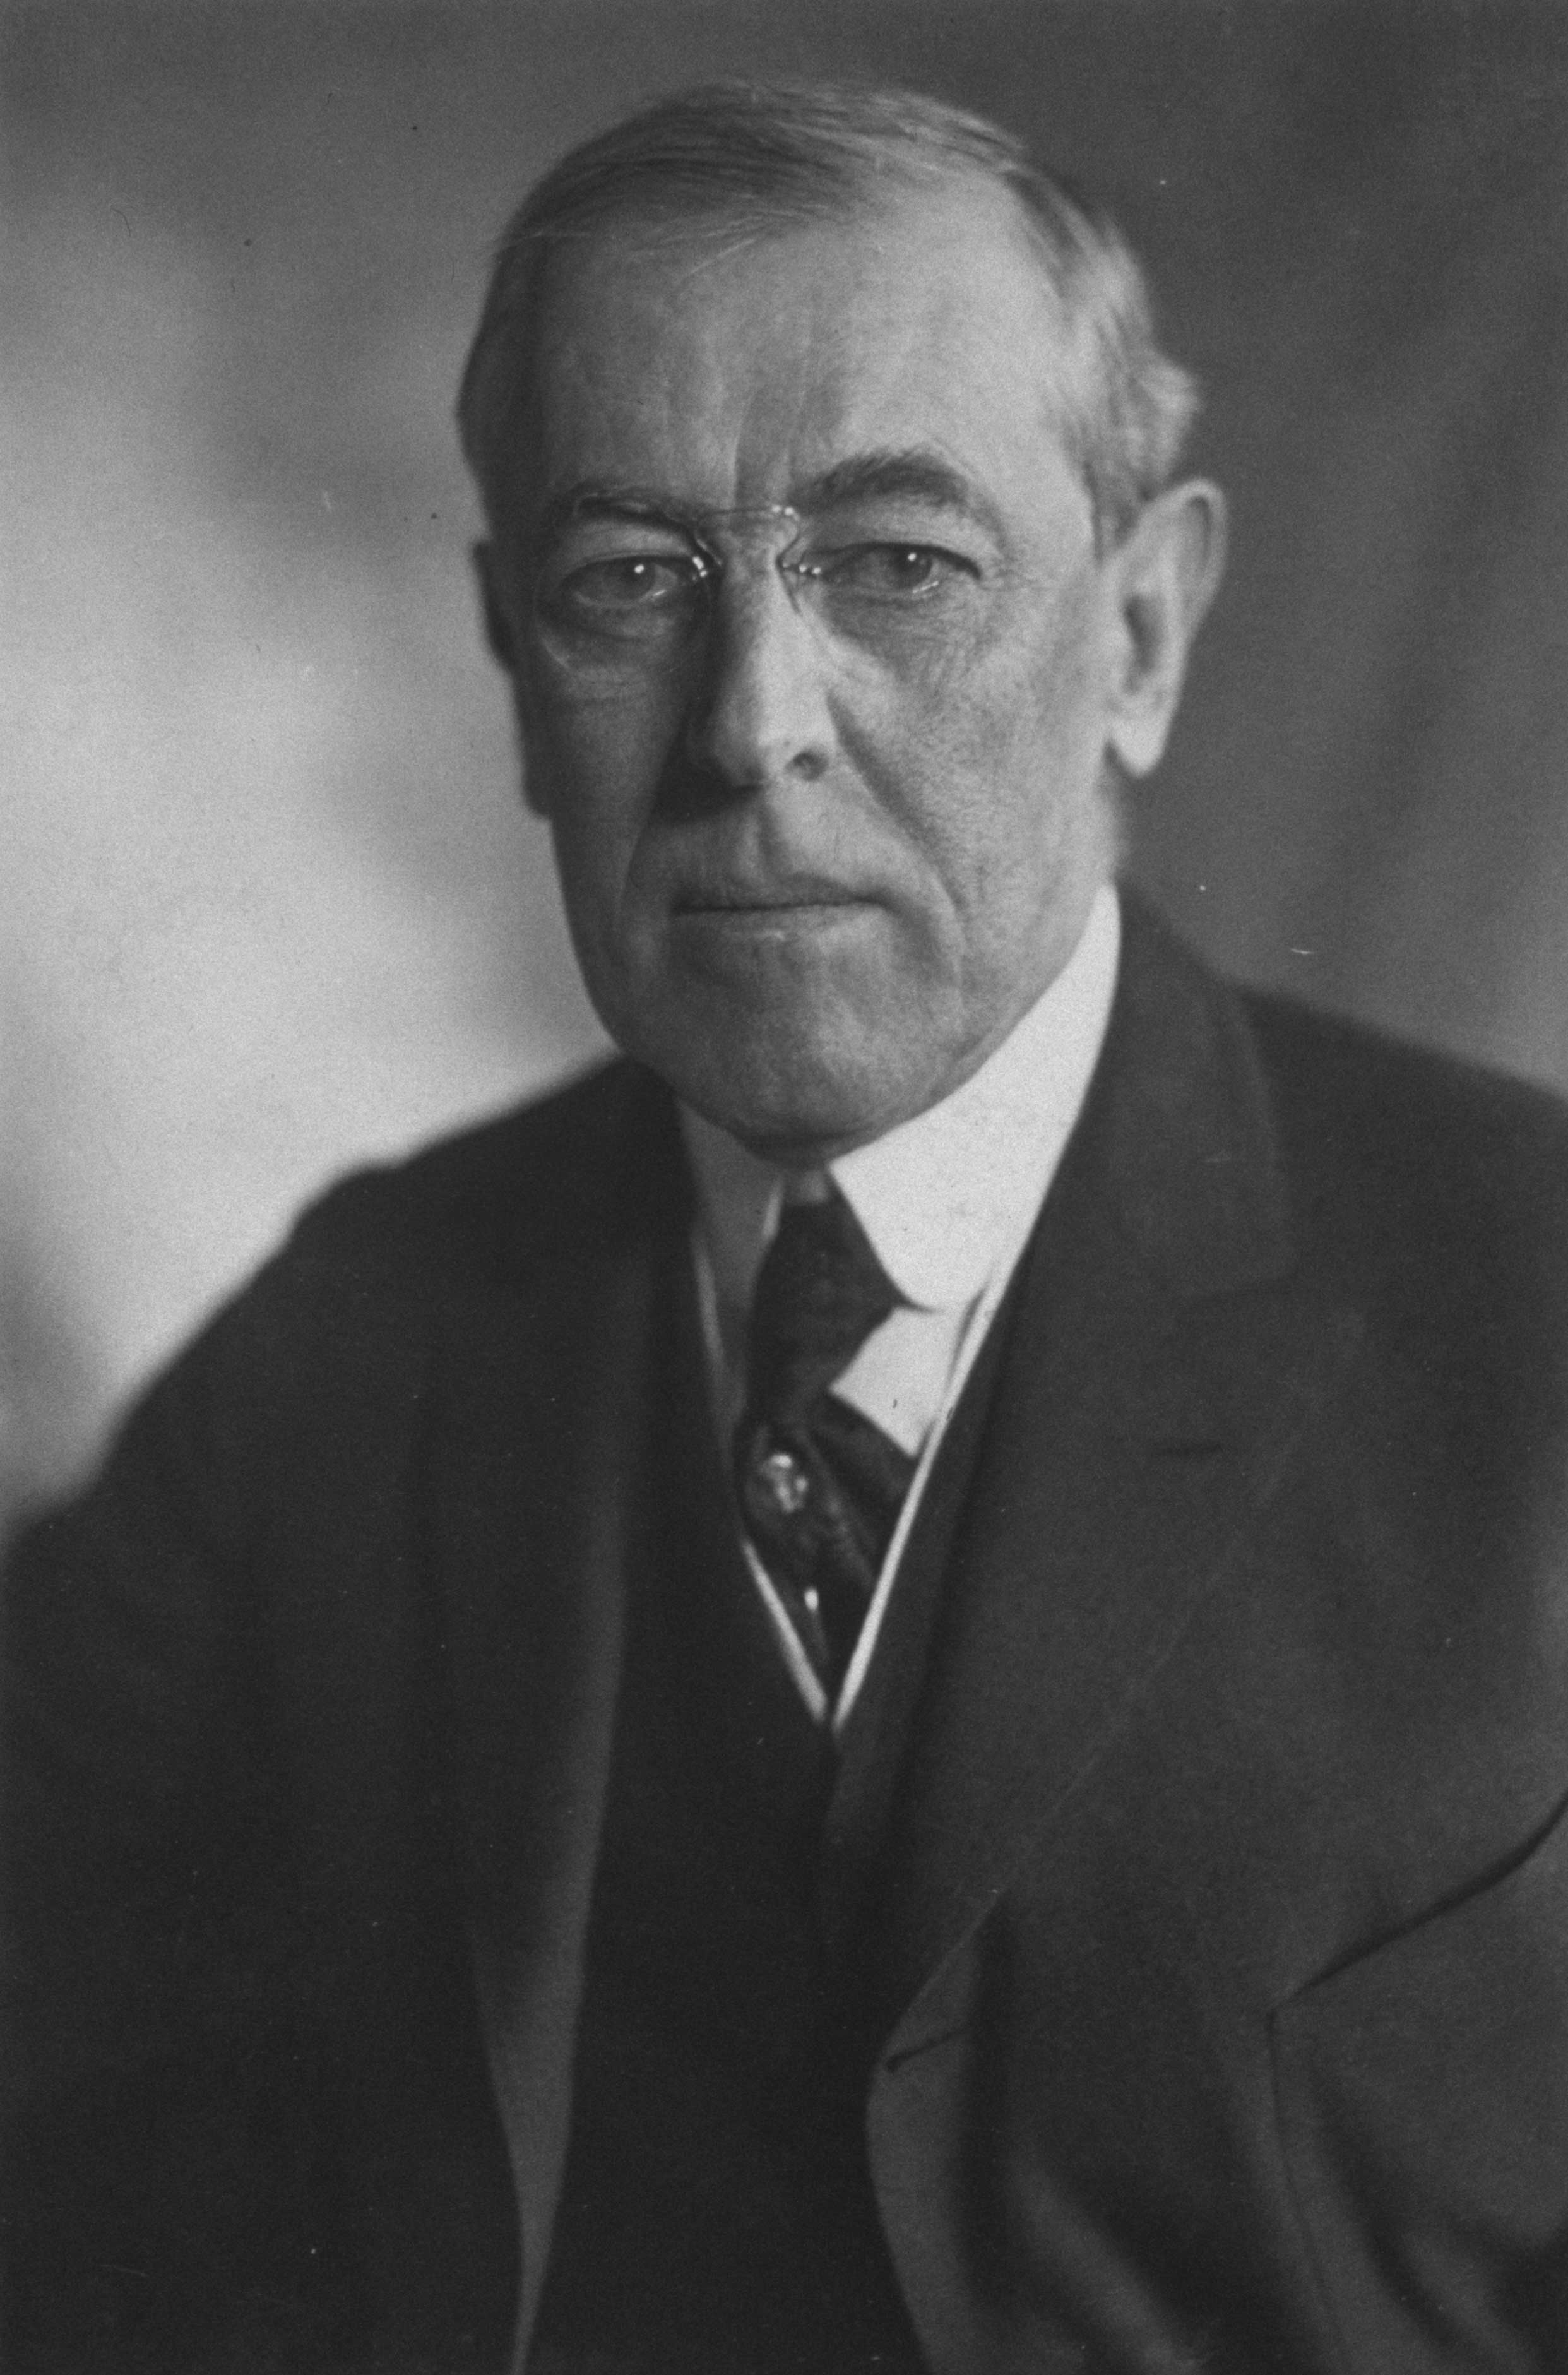 woodrow wilsons presidential influence on american nation during the 1900s Learn more about the 28th president of the united states, woodrow wilson from his childhood through his time as president and his retirement.